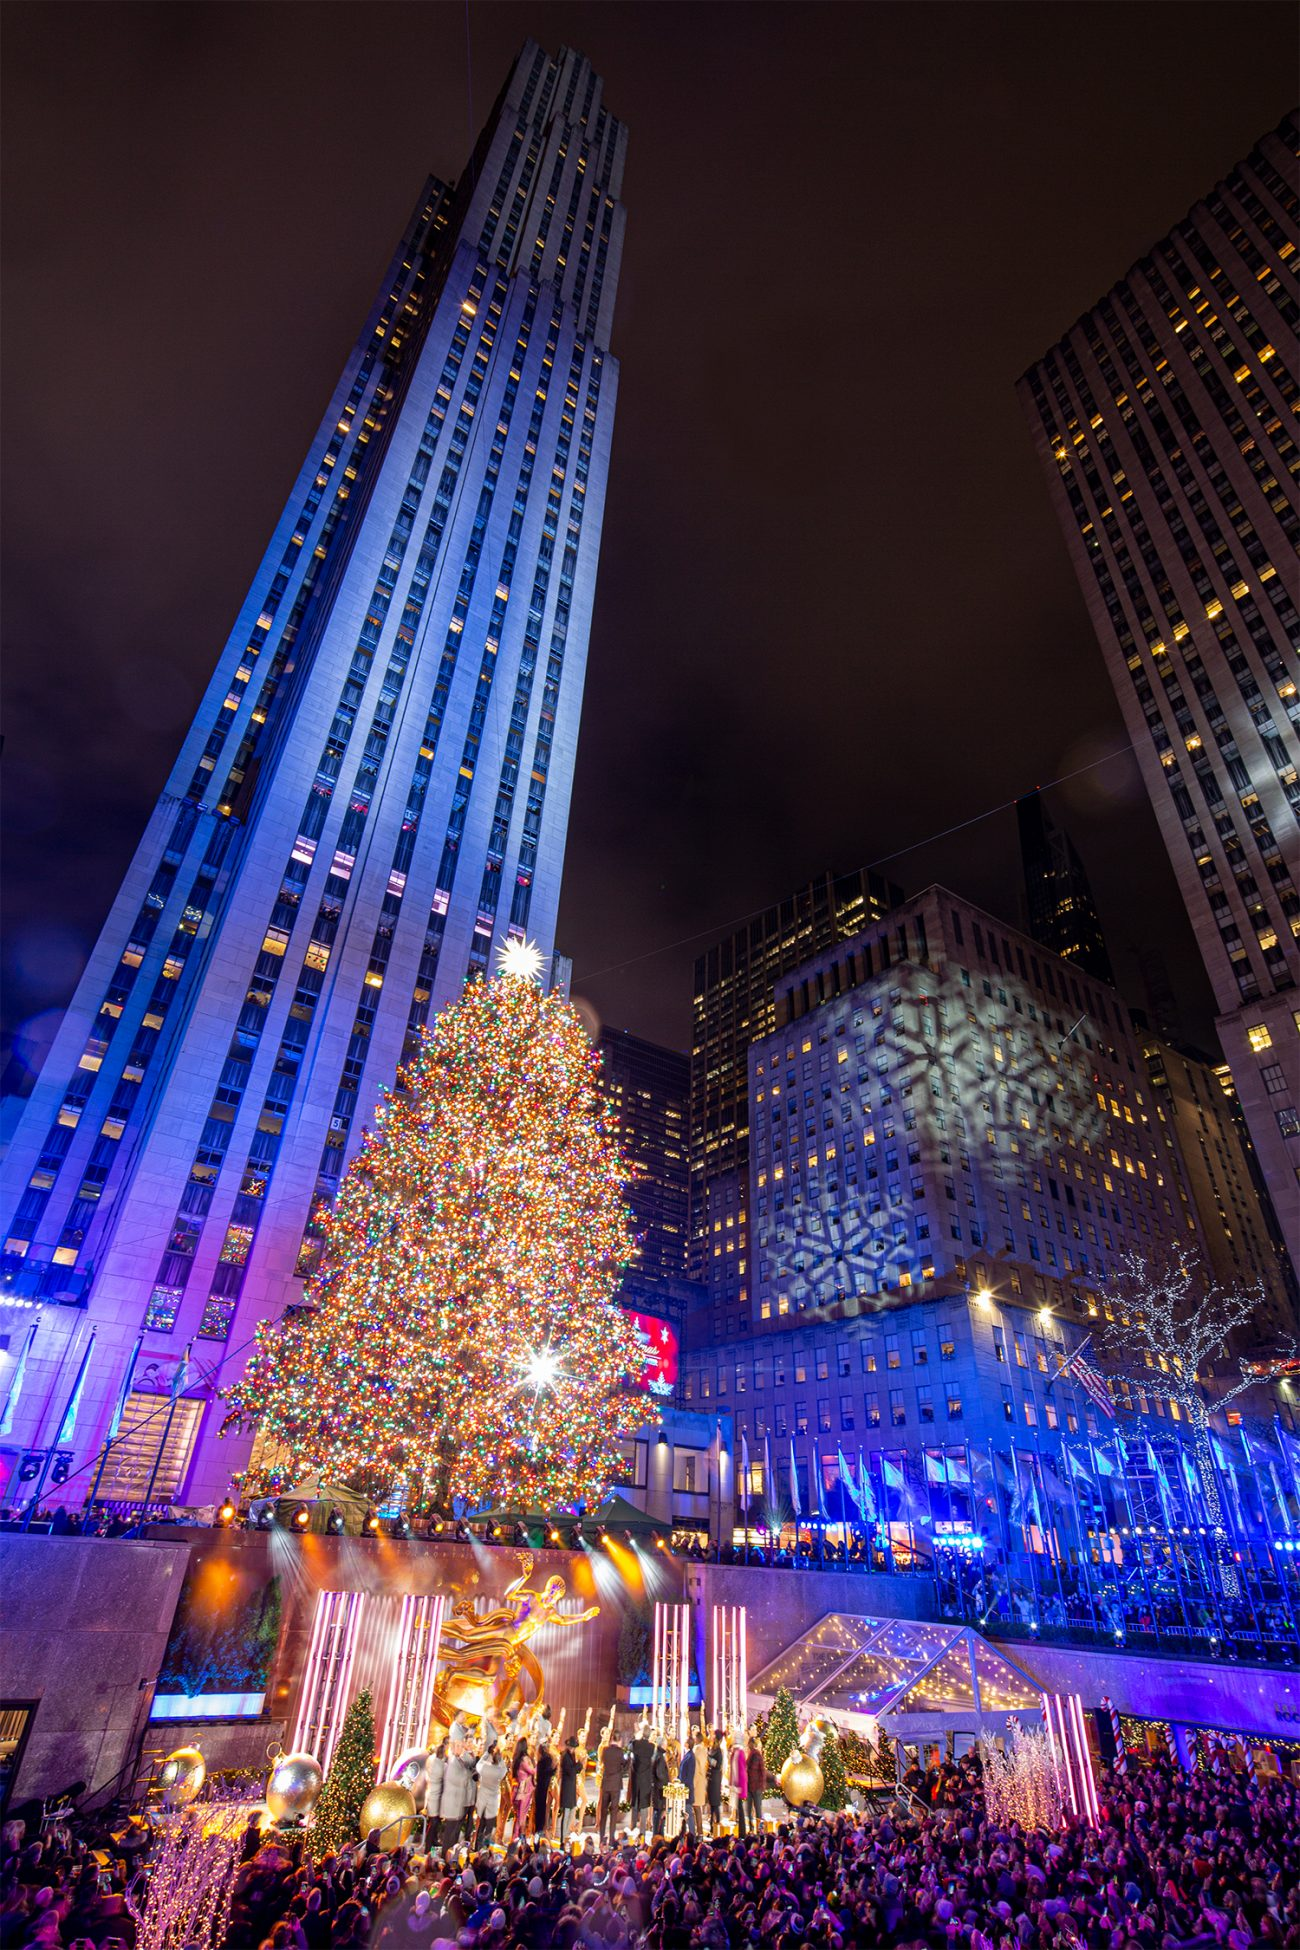 YIMBY Captures the 87th Annual Tree Lighting at Rockefeller Center - New York YIMBY